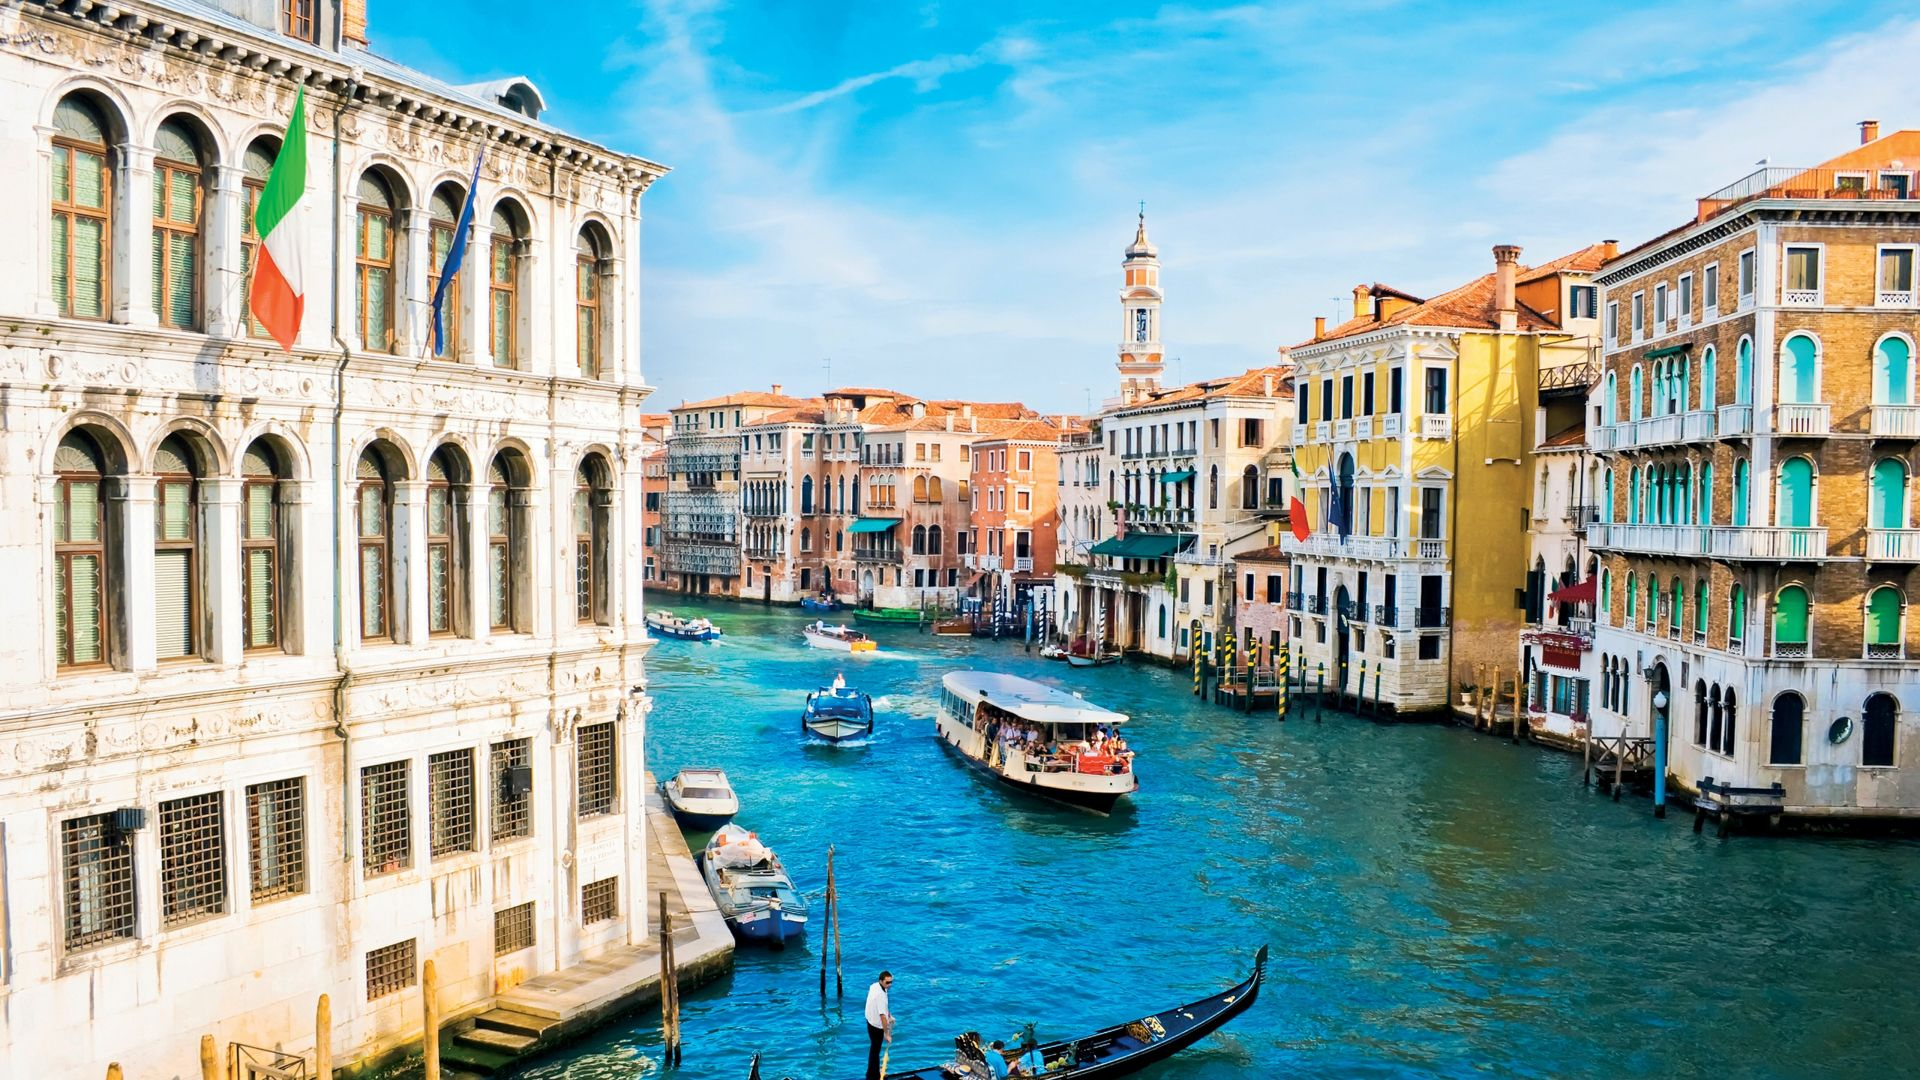 Grand Canal, Venice, Italy, travel, tourism (horizontal)